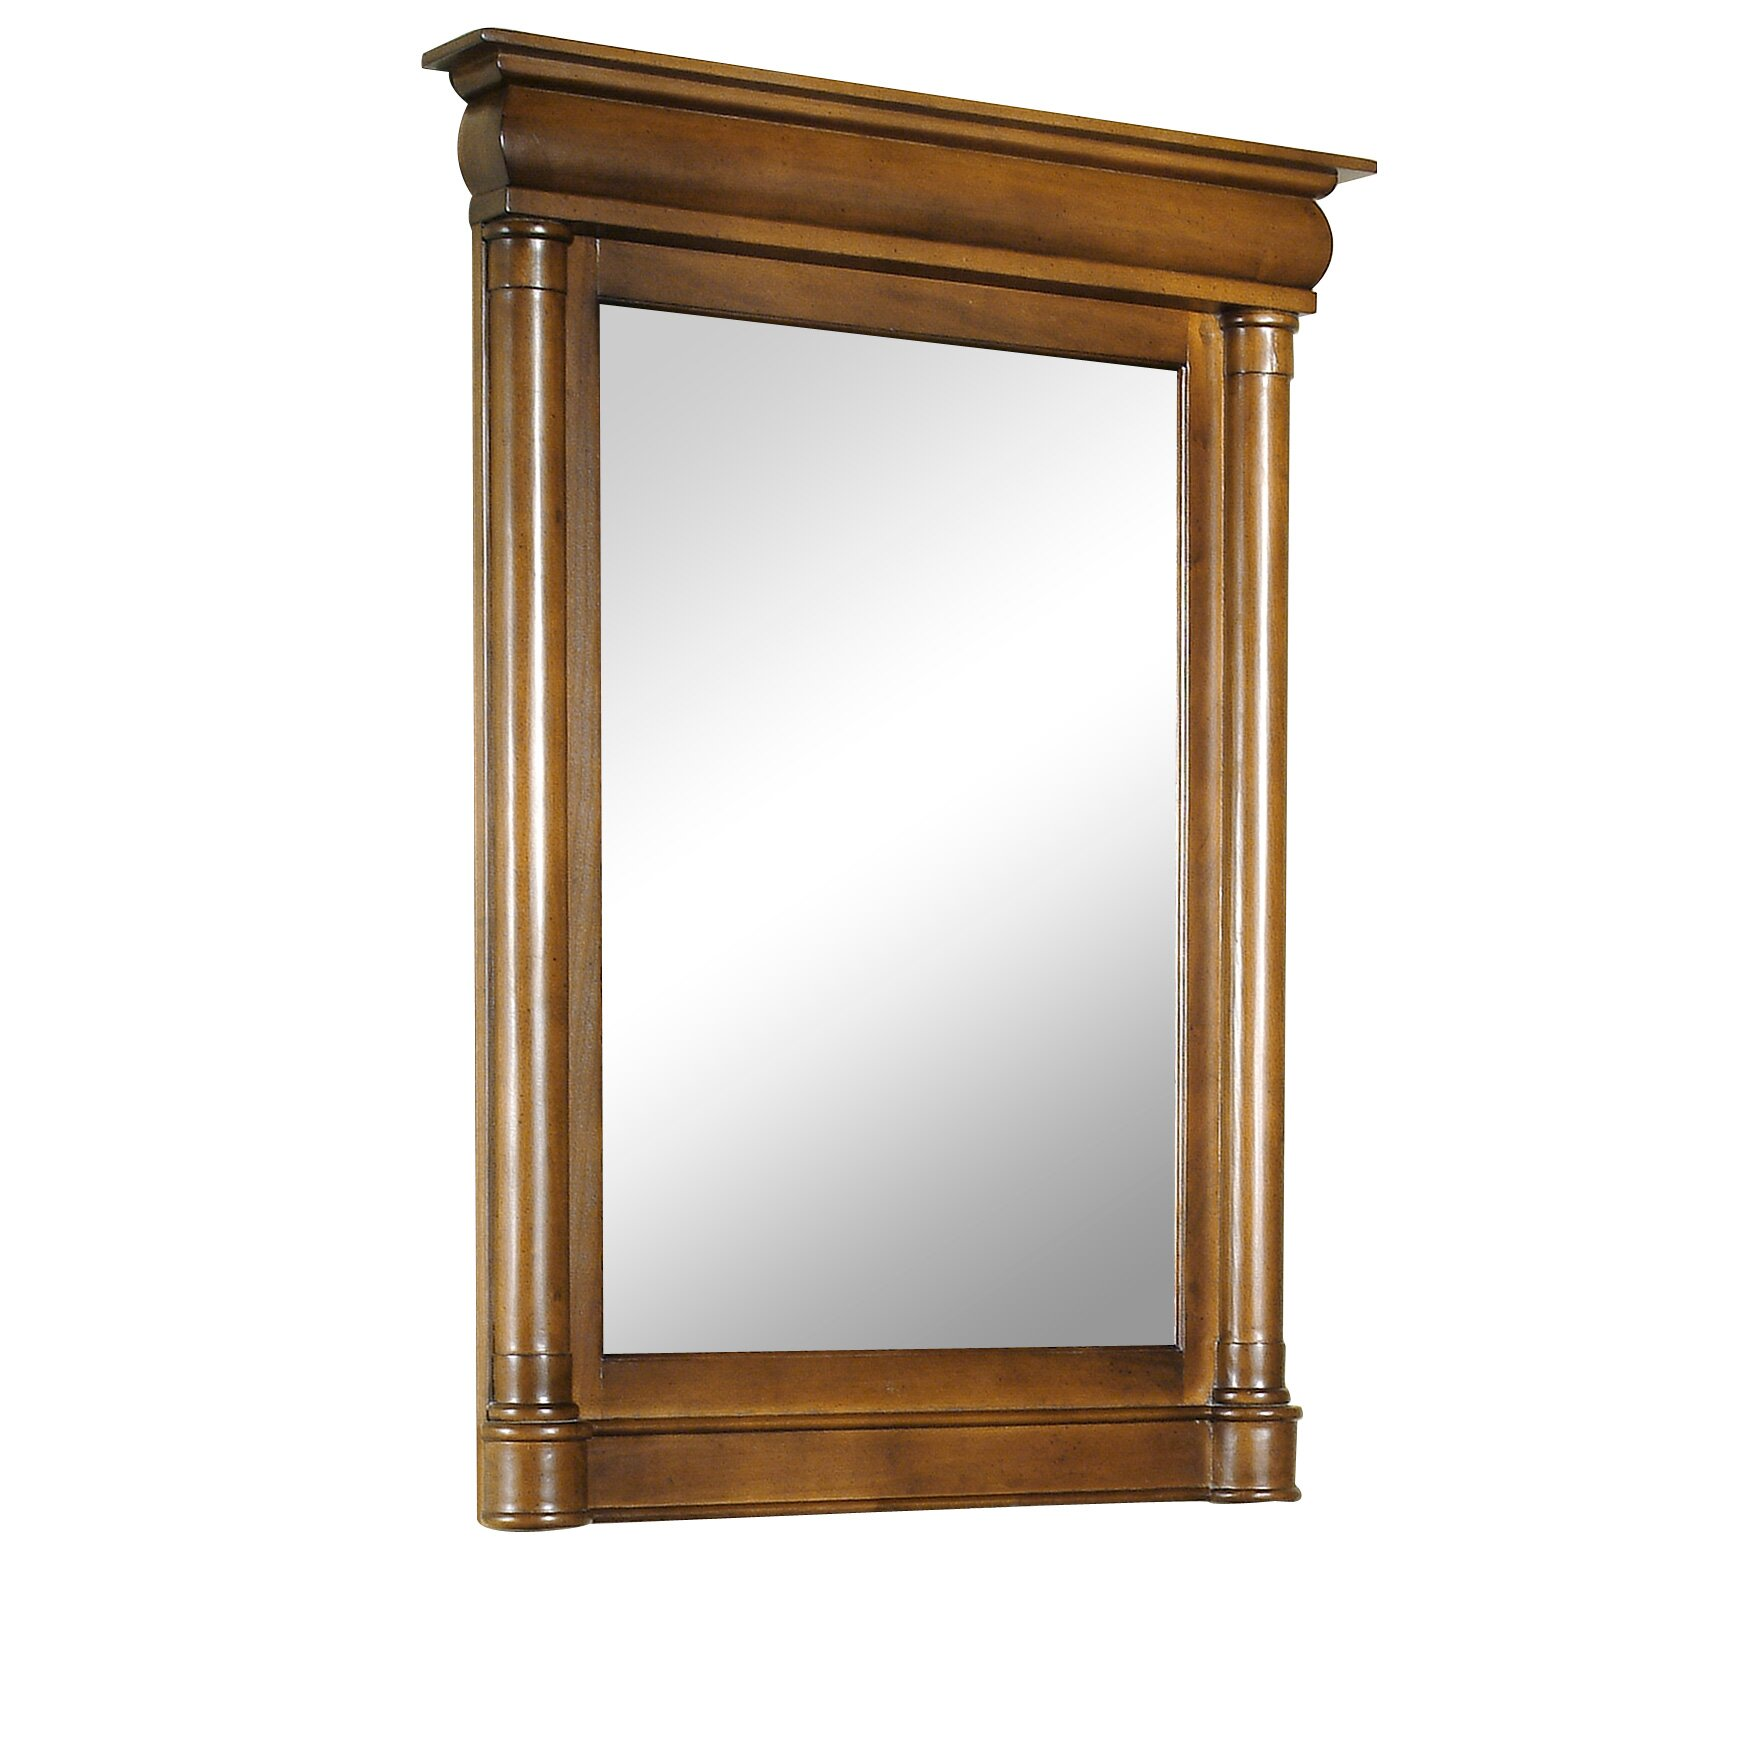 Kaco John Adams Large Vanity Mirror Amp Reviews Wayfair